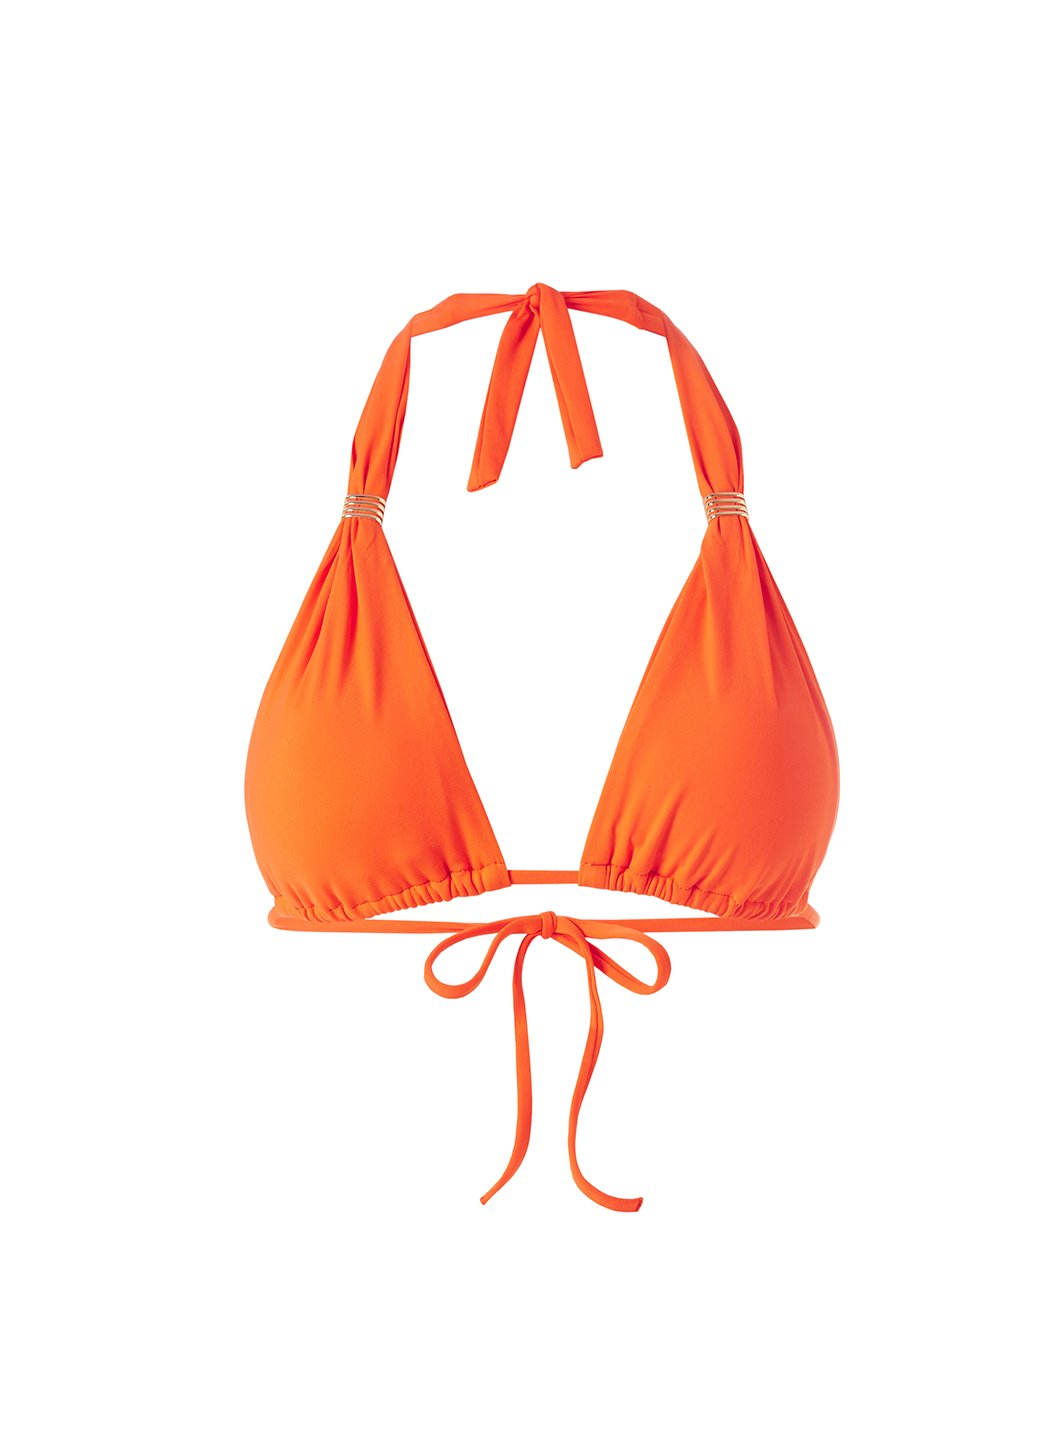 Maldives Papaya Bikini Top CUTOUT